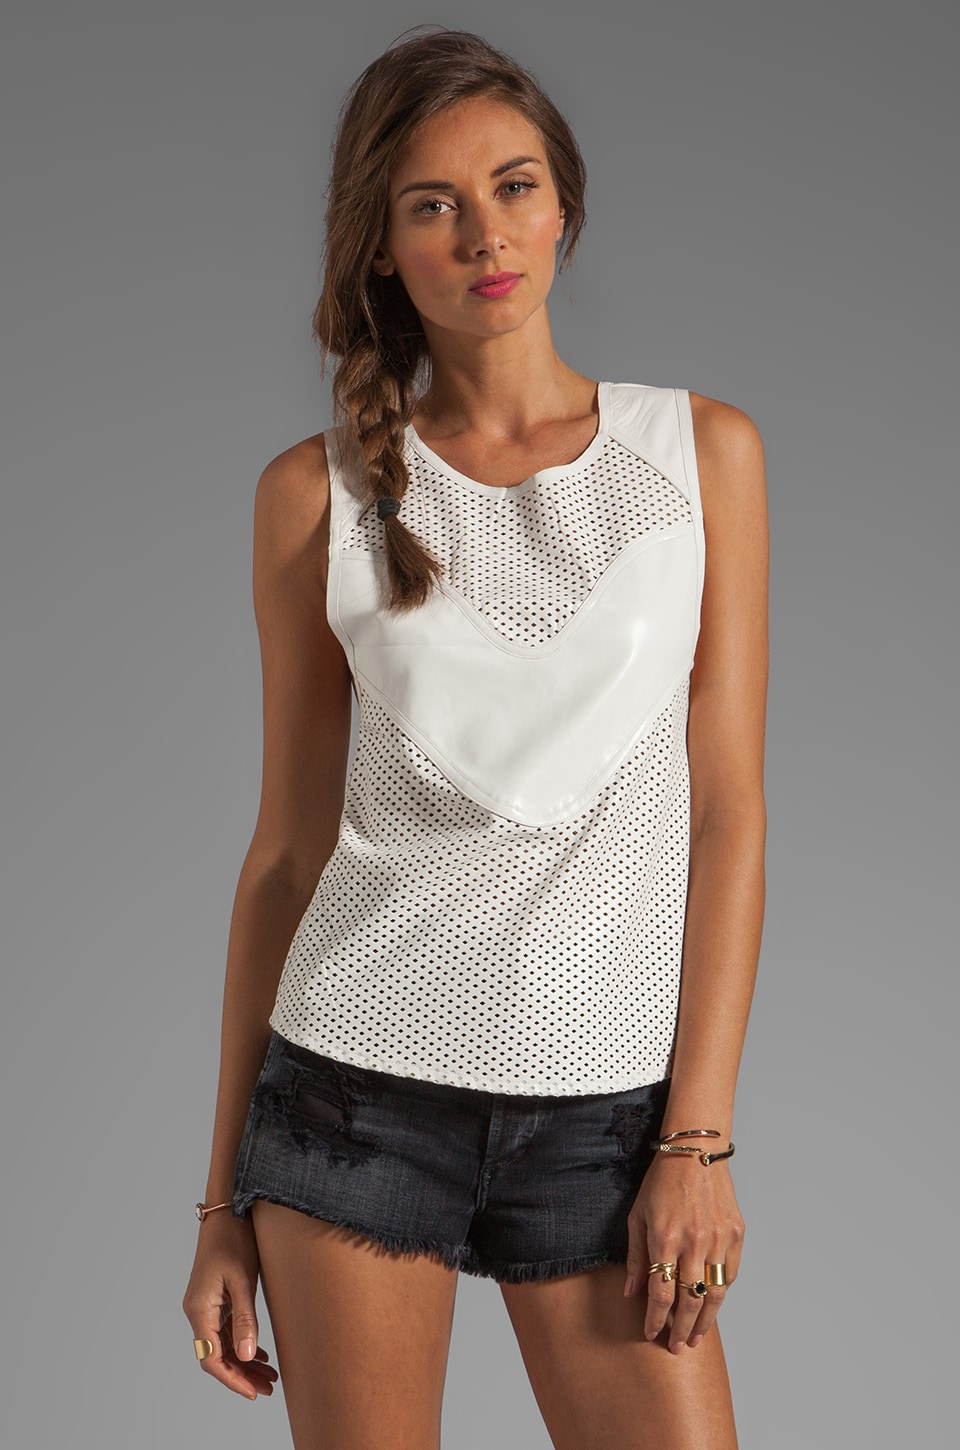 bless'ed are the meek Shell Top in Ivory